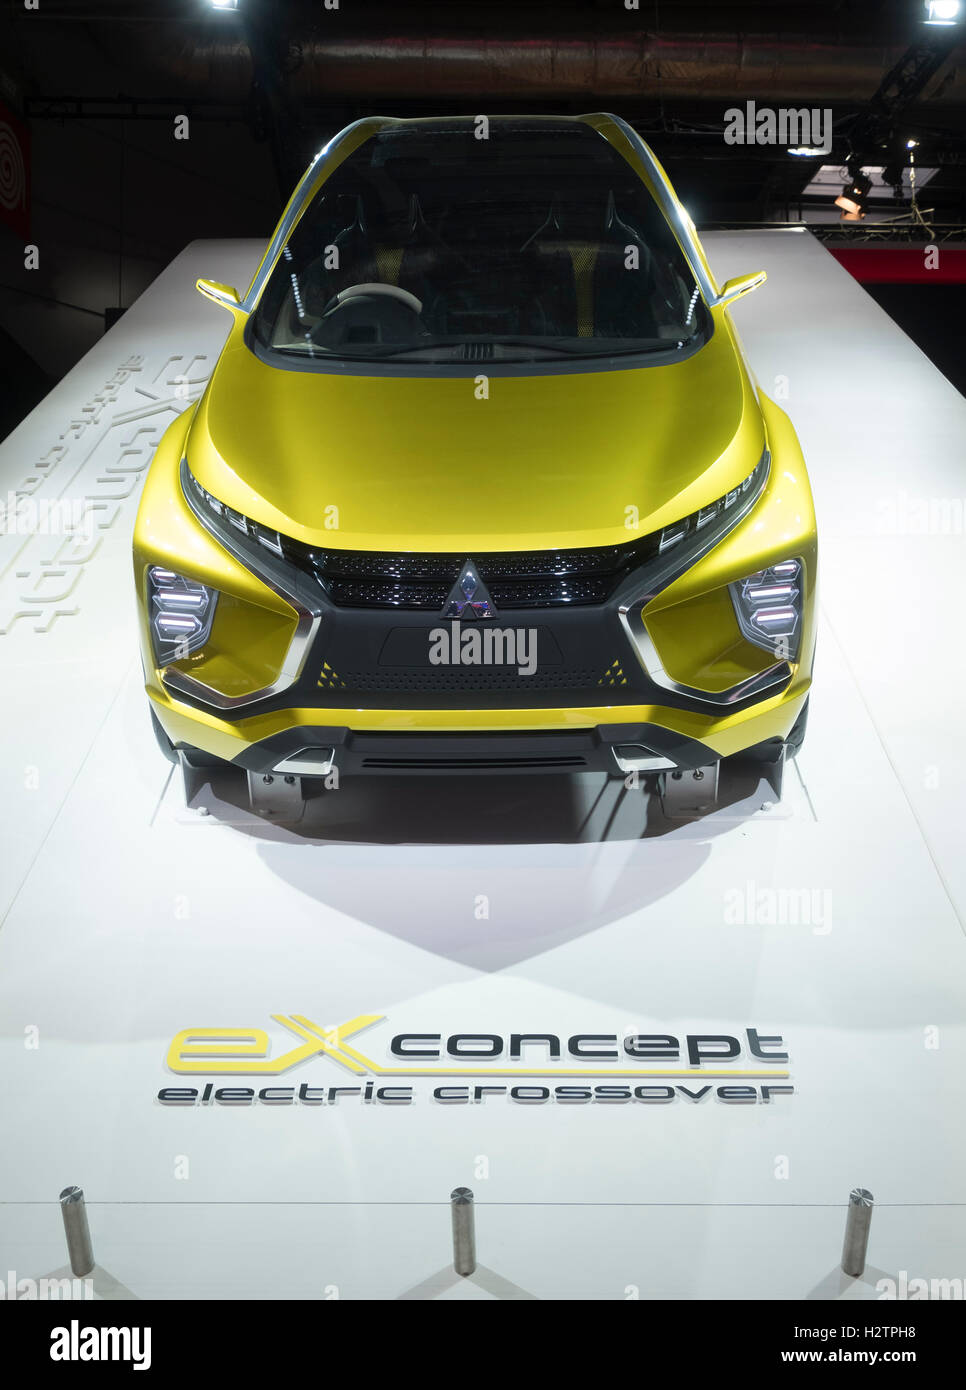 Mitsubishi EX electric crossover concept vehicle at Paris Motor Show 2016 - Stock Image